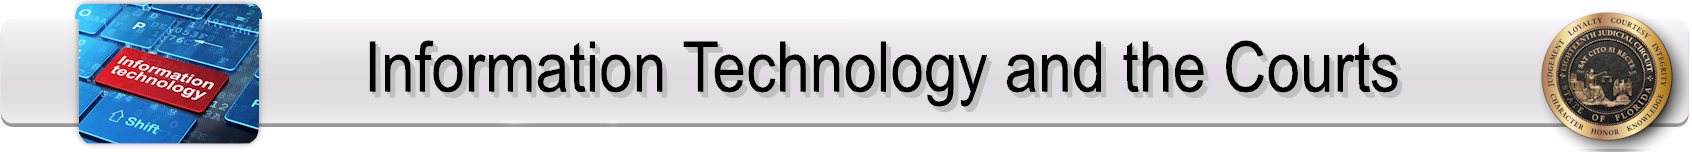 Information Technology Page Banner